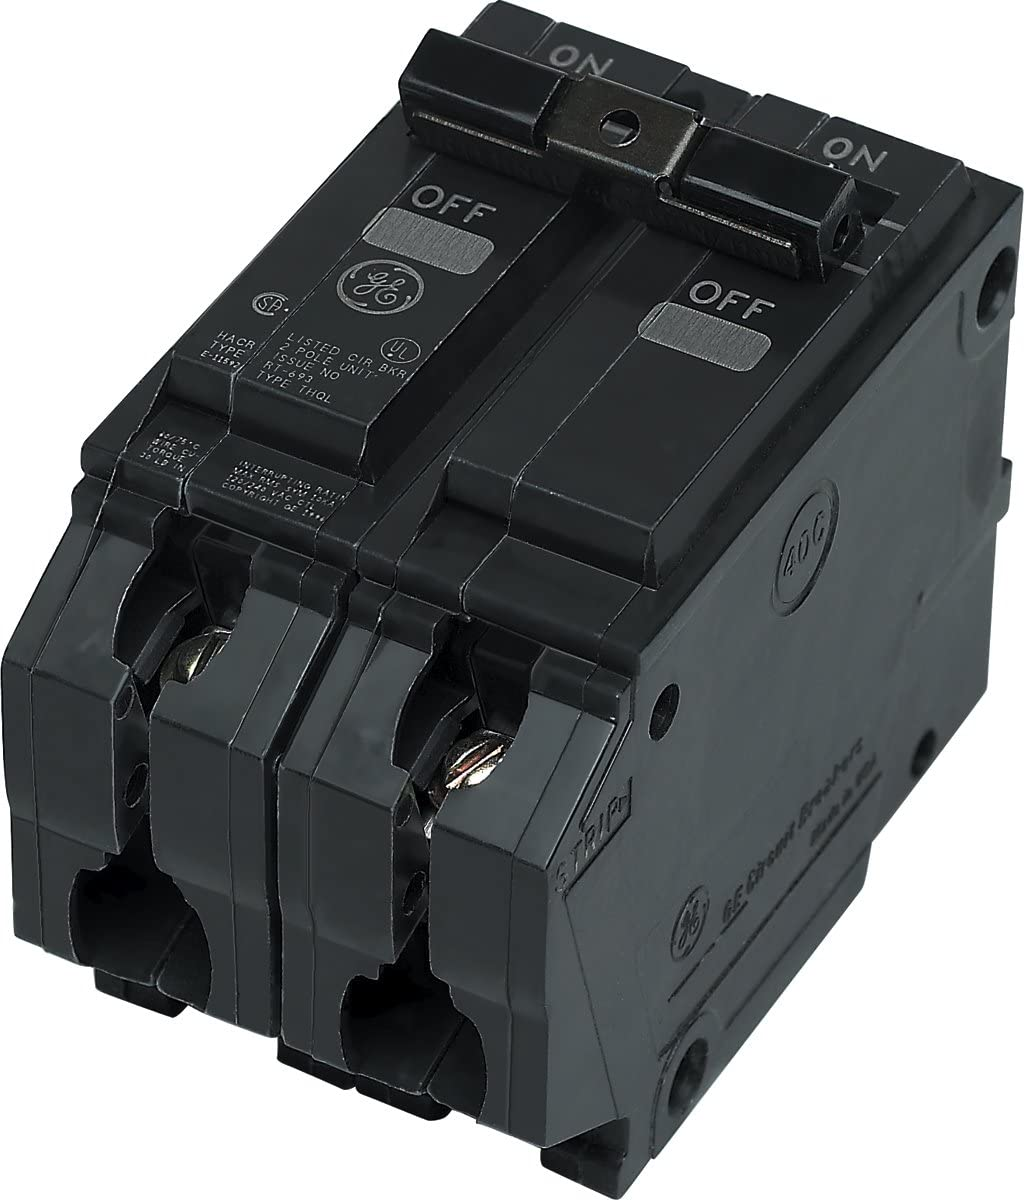 General Electric THQL2145 Circuit Breaker, 2-Pole 45-Amp Thick Series